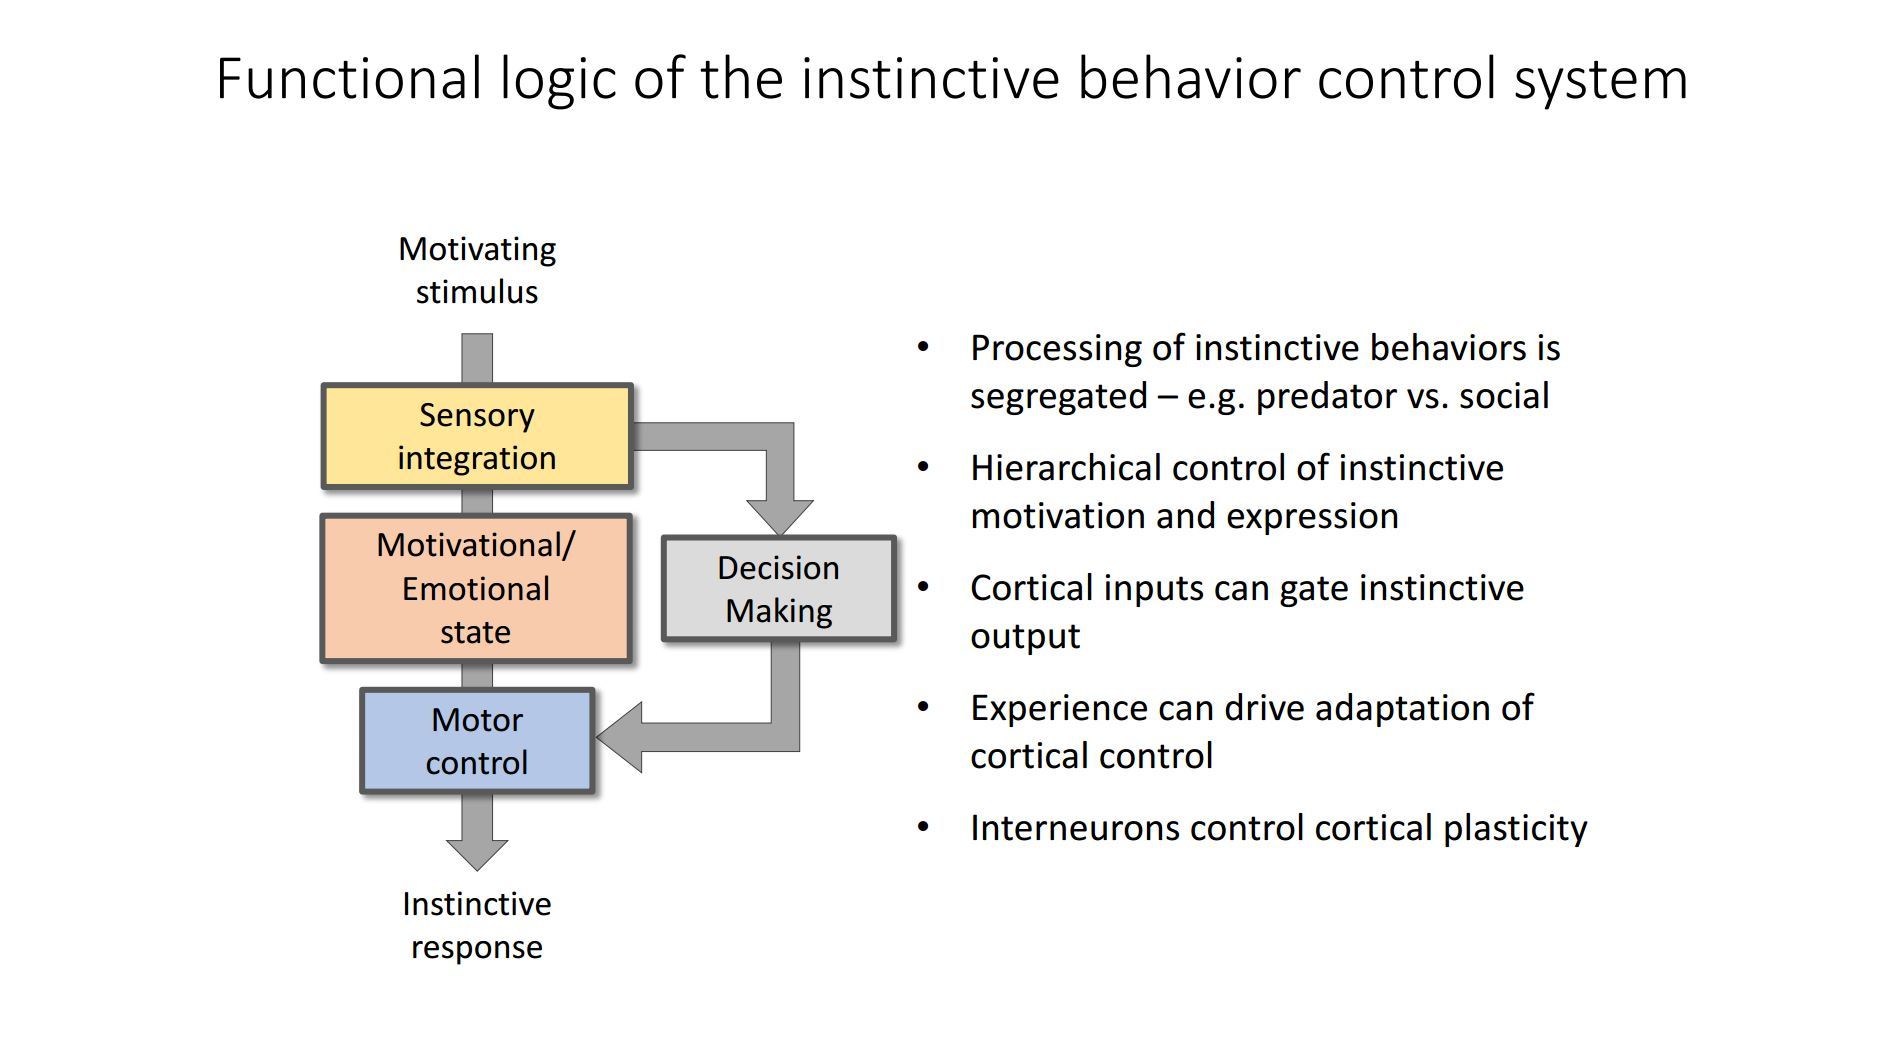 Functional logic of the instinctive behaviour control systems